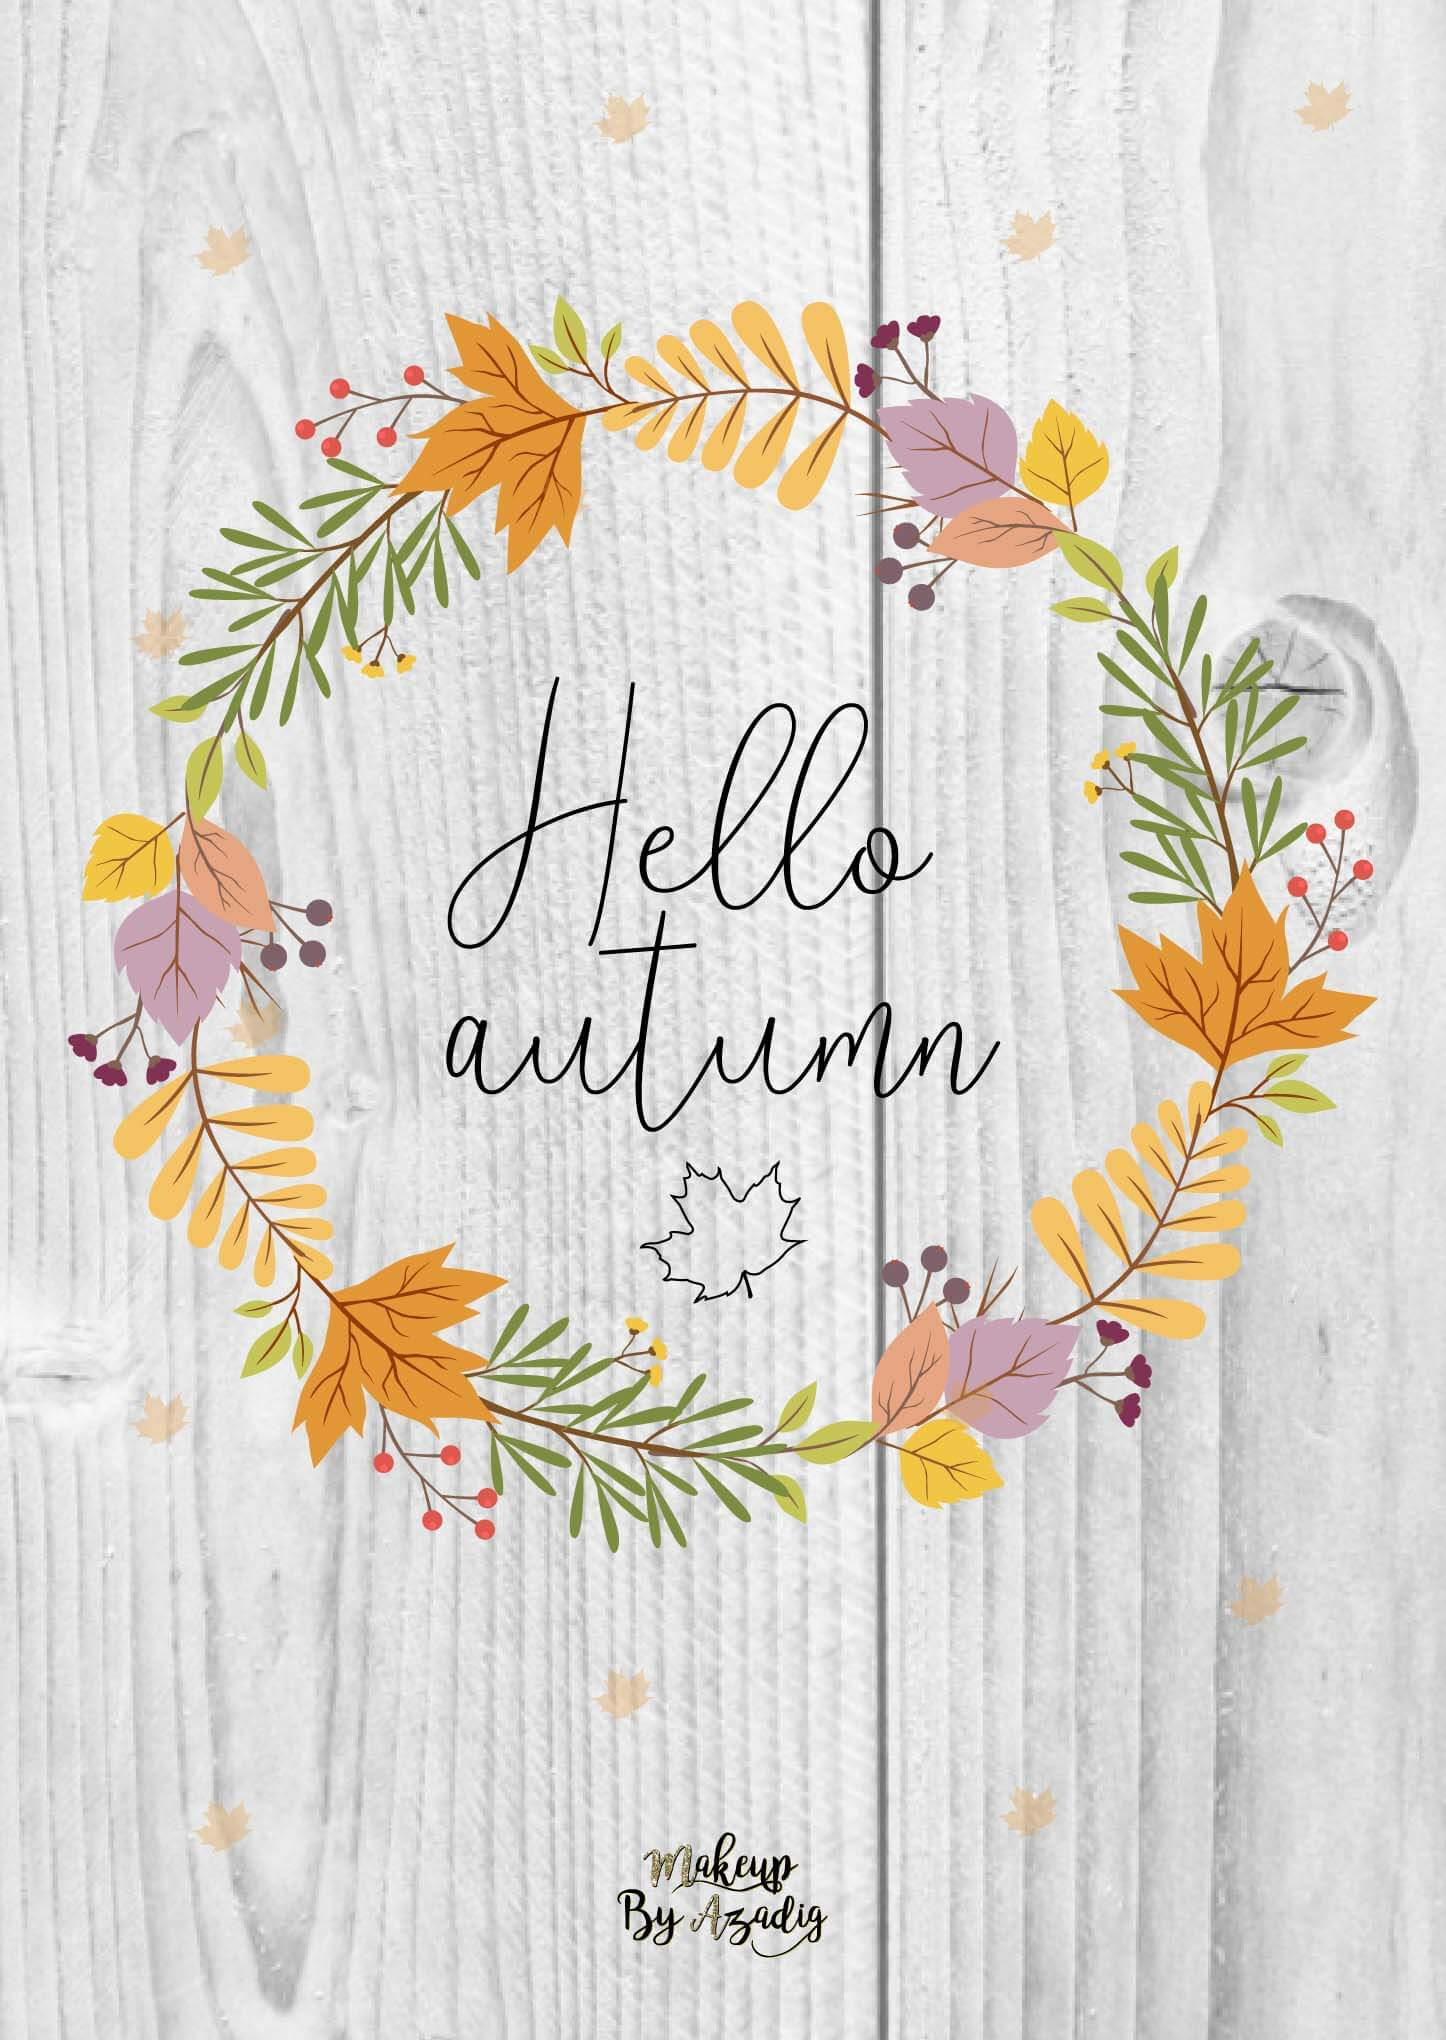 fond-decran-wallpaper-hello-couronne-automne-ipad-tablette-apple-makeupbyazadig-tendance